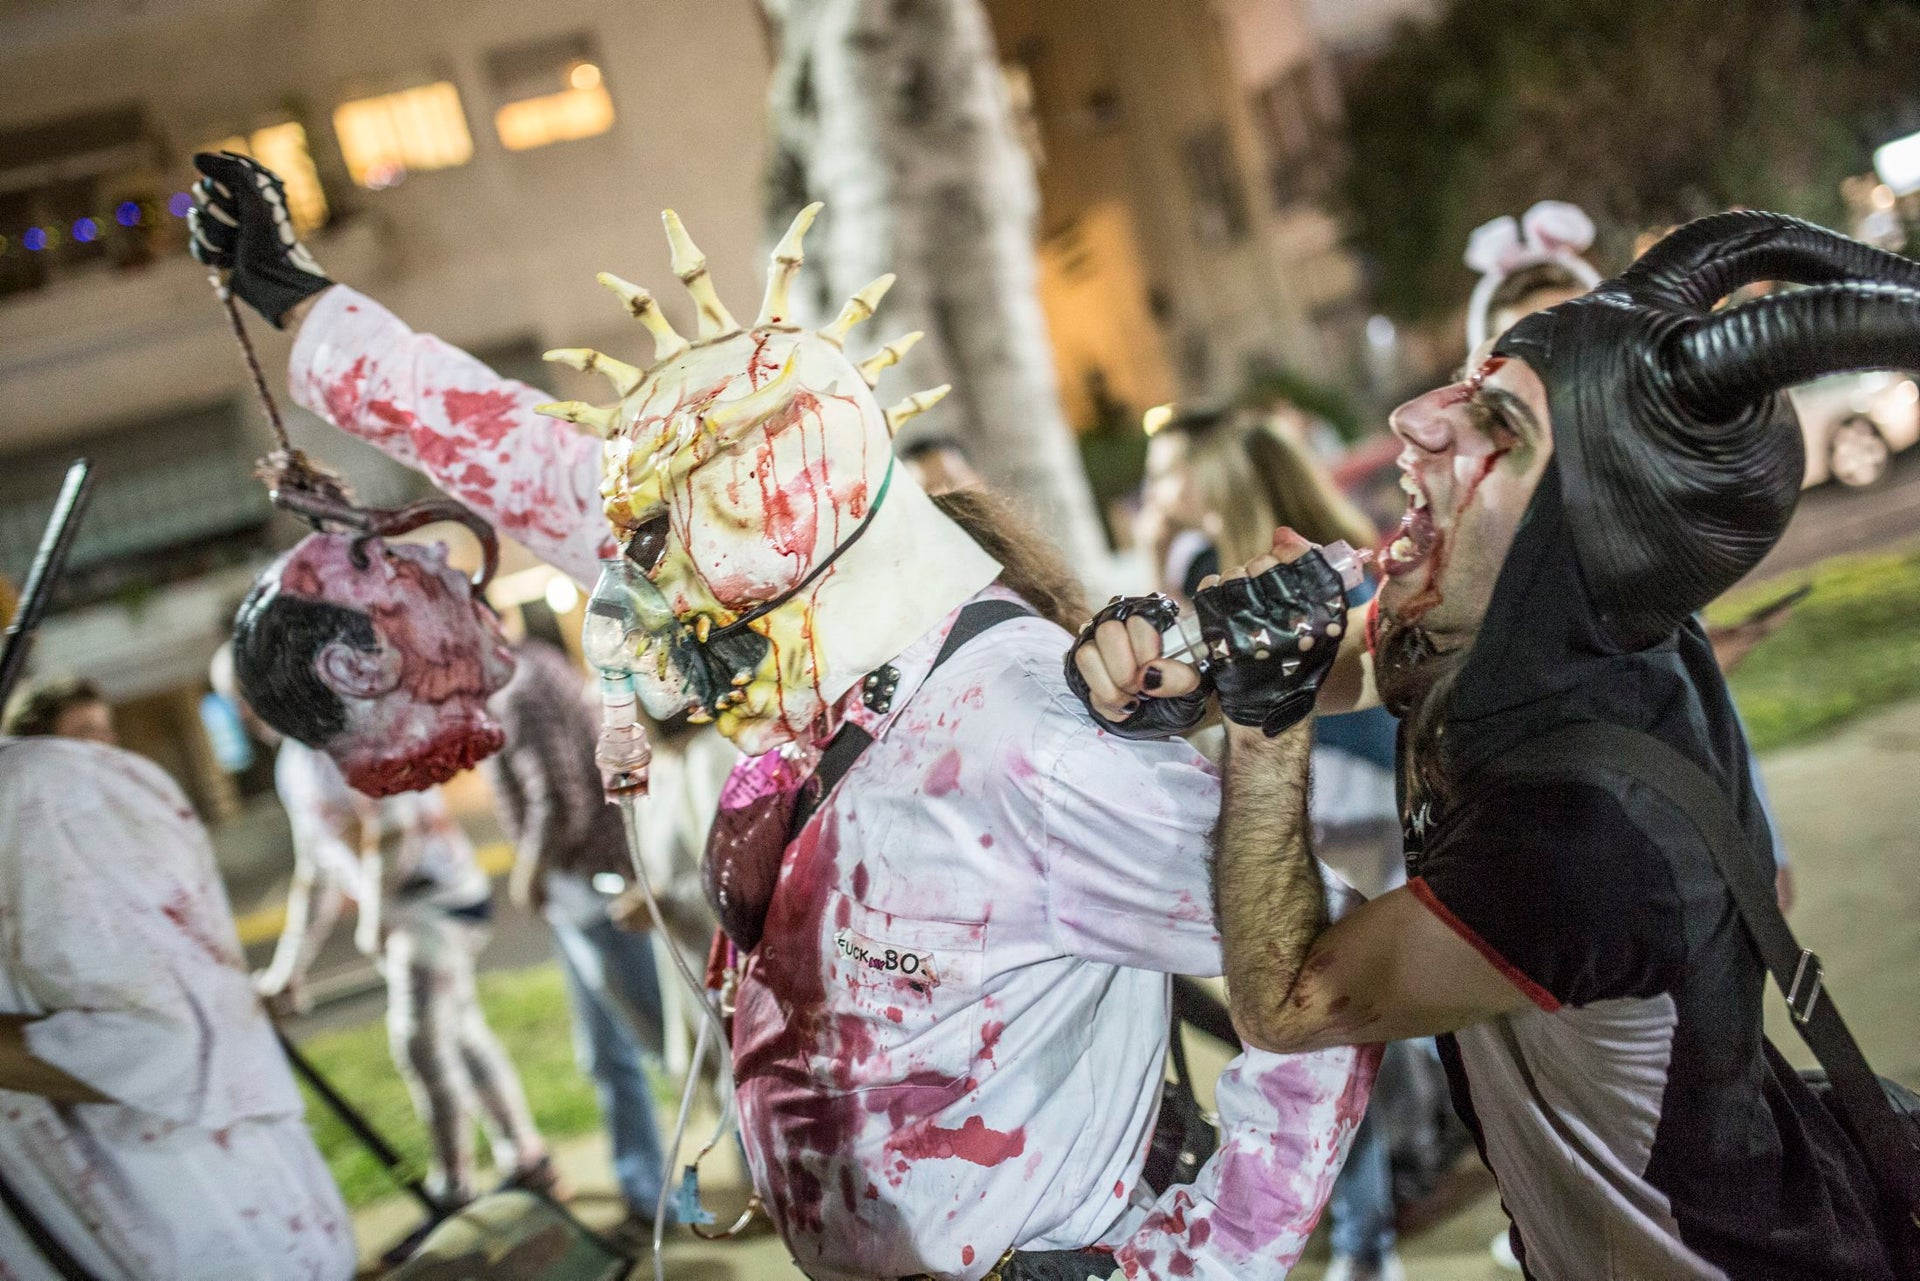 People march in the Tel Aviv zombie parade, March 27, 2016.